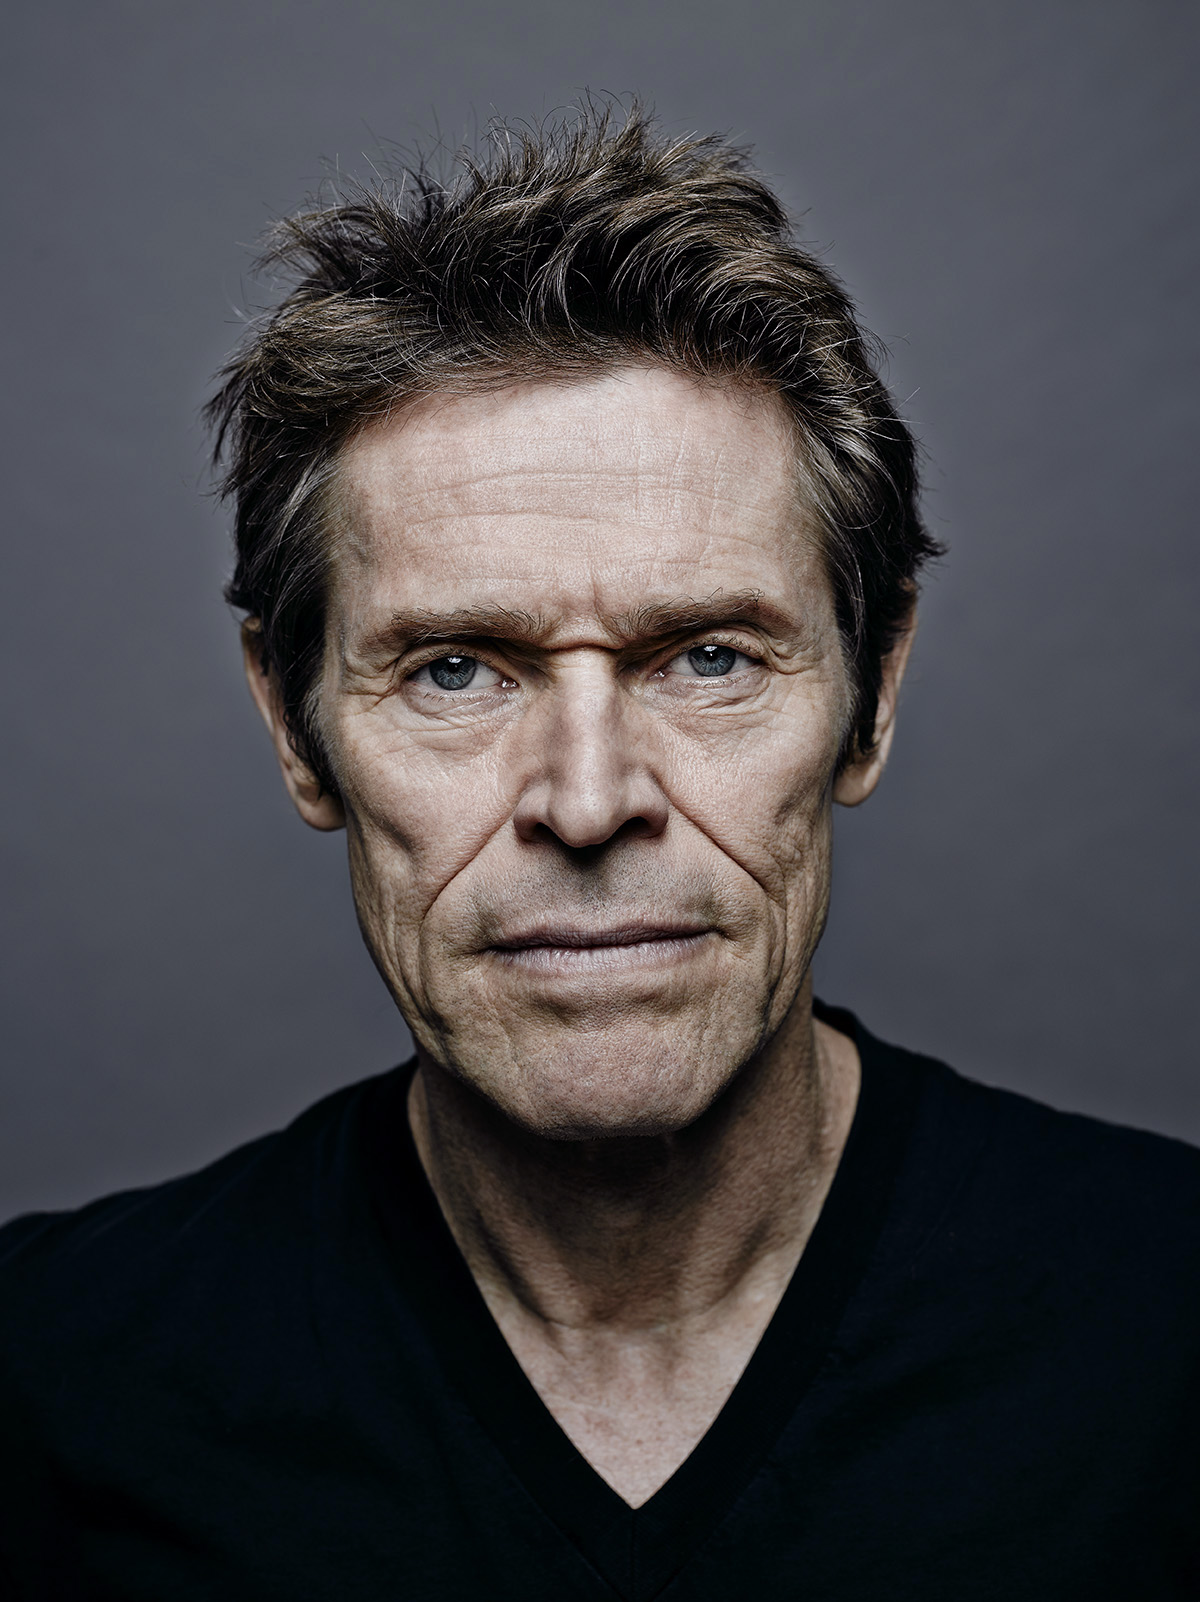 Willem Dafoe: Net worth, House, Car, Salary, Wife & Family ...